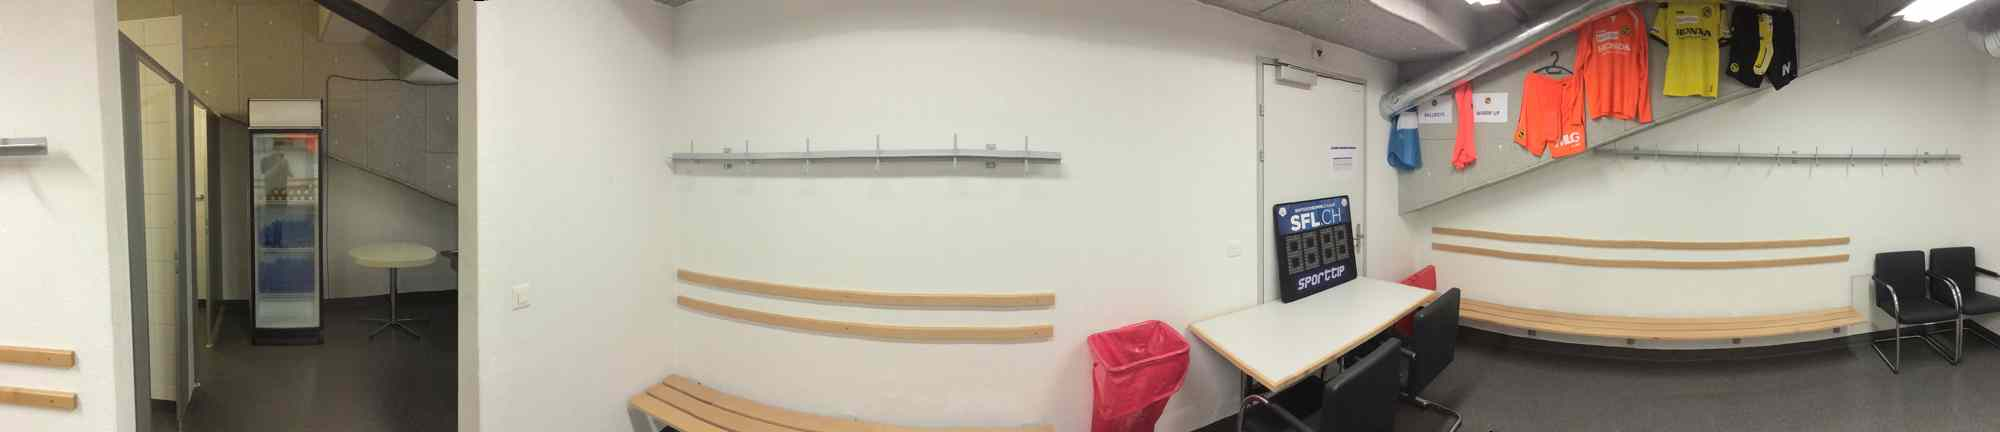 Stade de Suisse referee dressing room panorama.